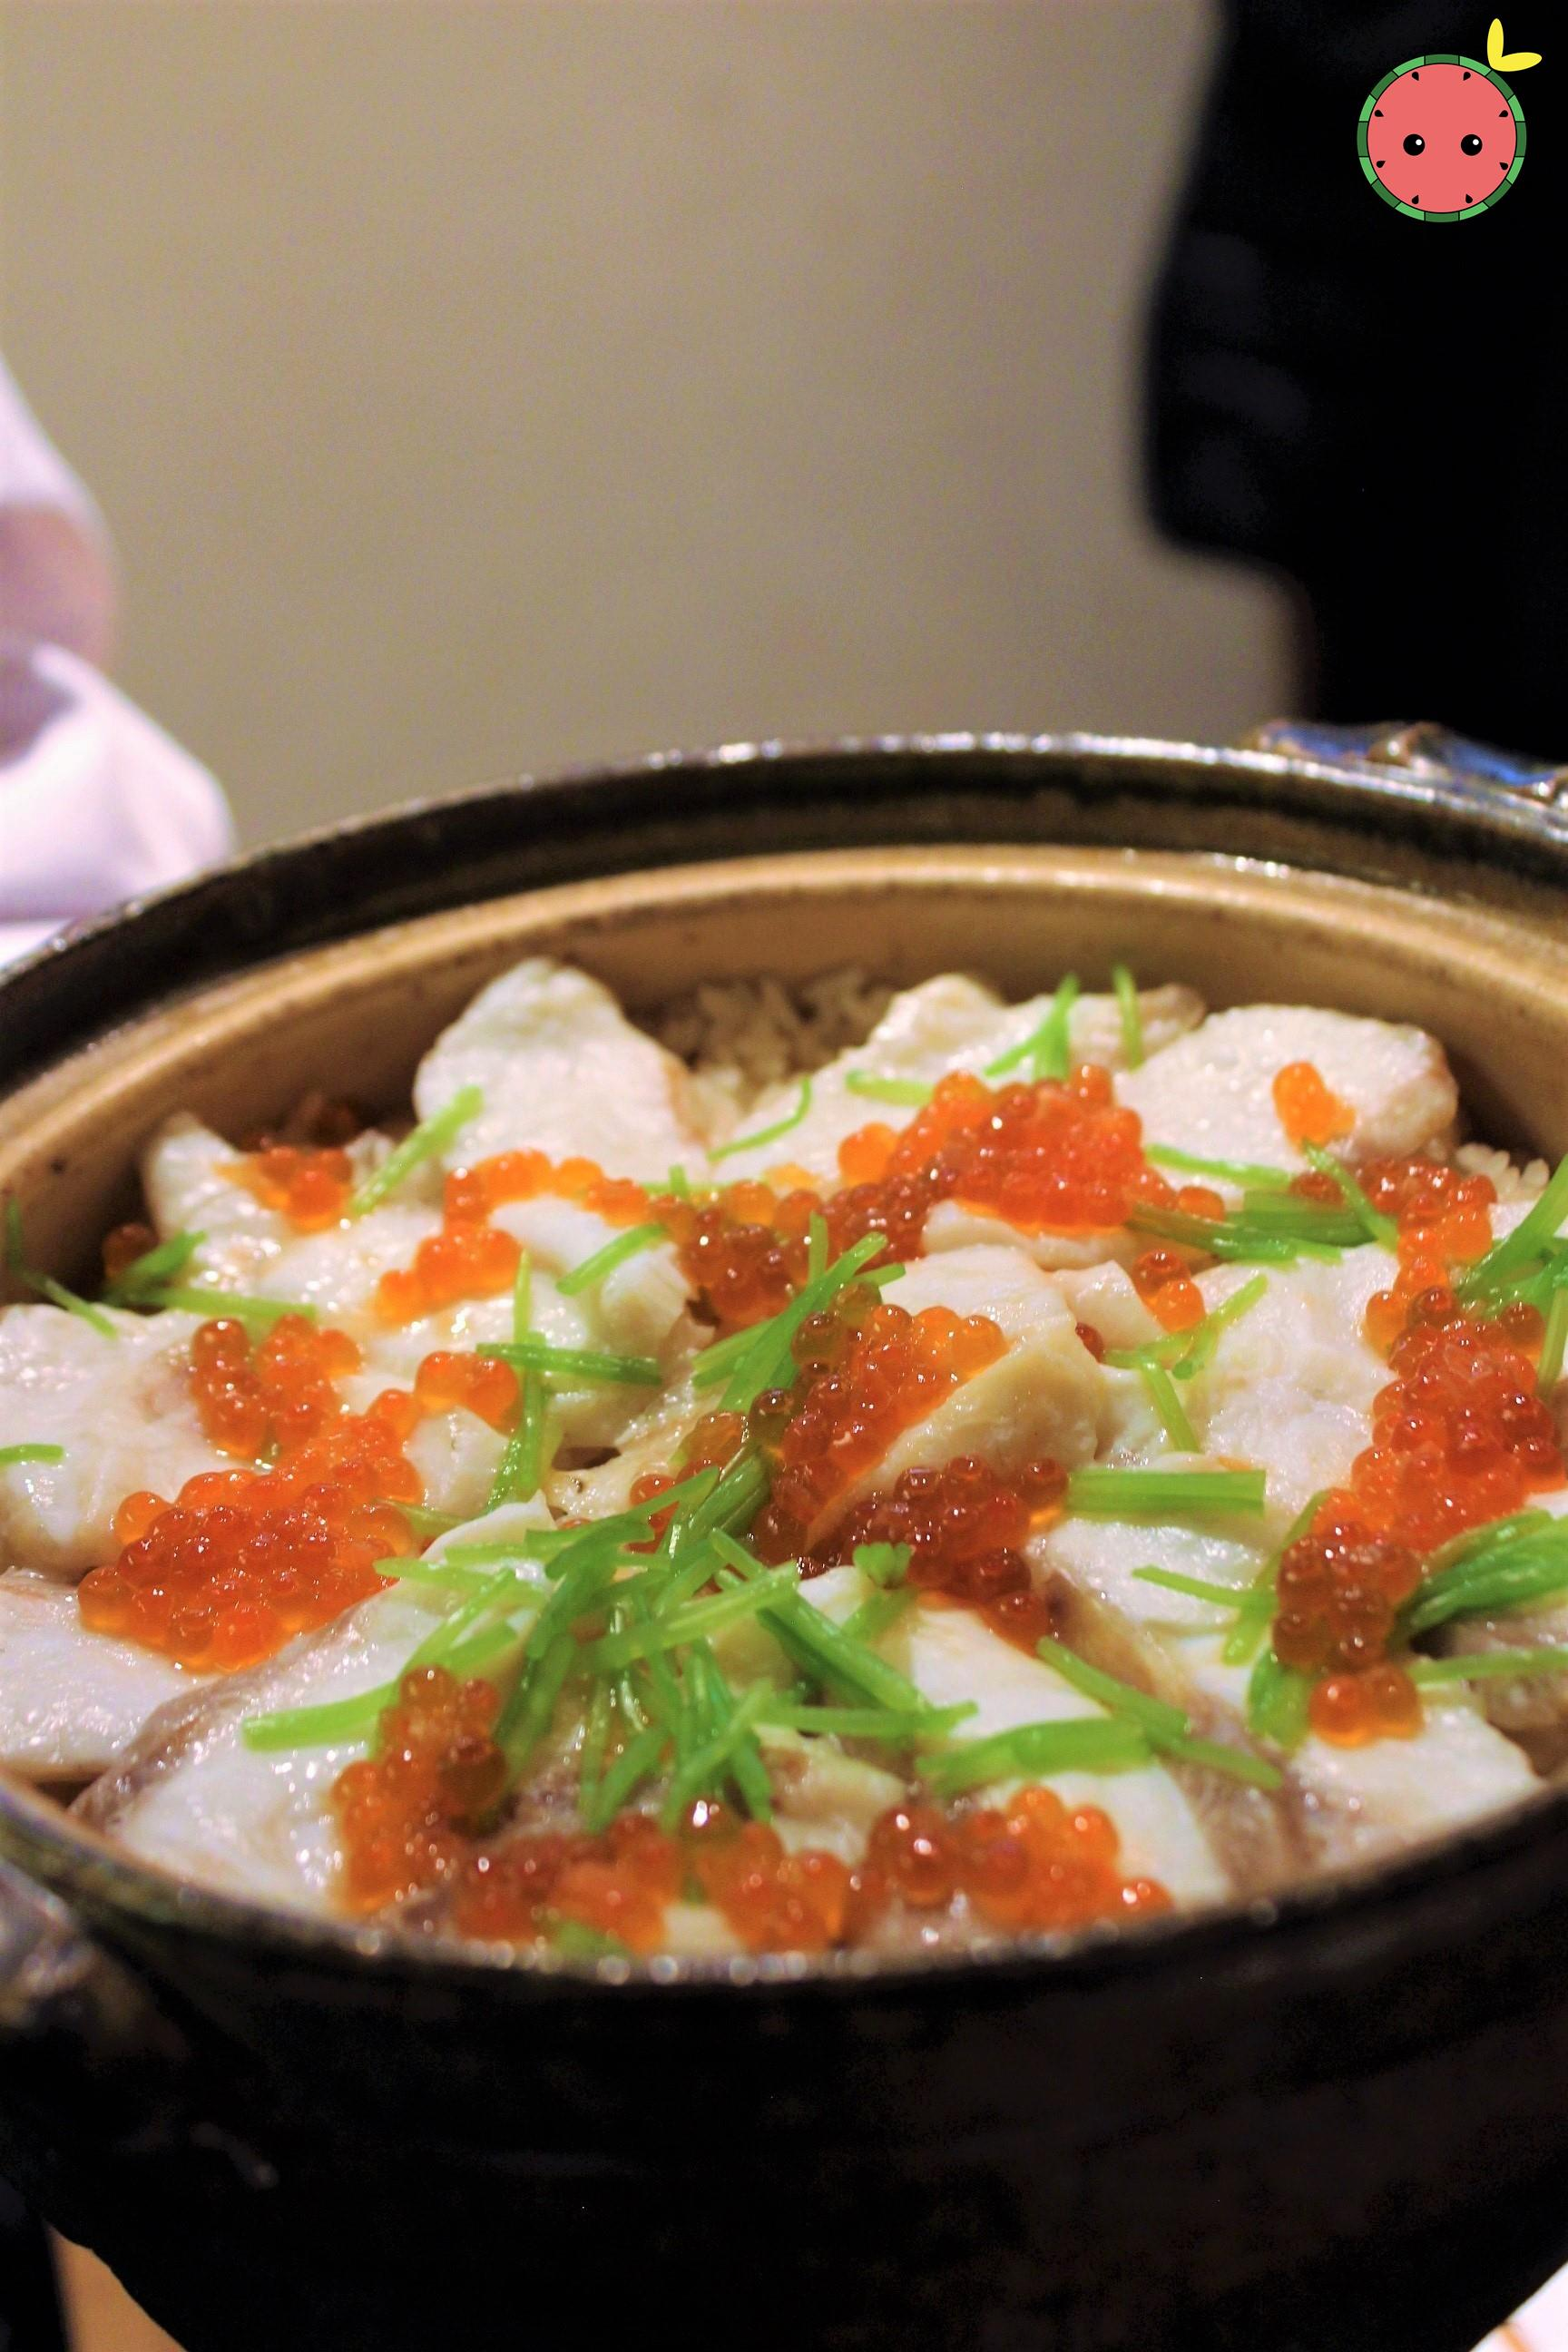 Red Snapper with Salmon Roe over Rice